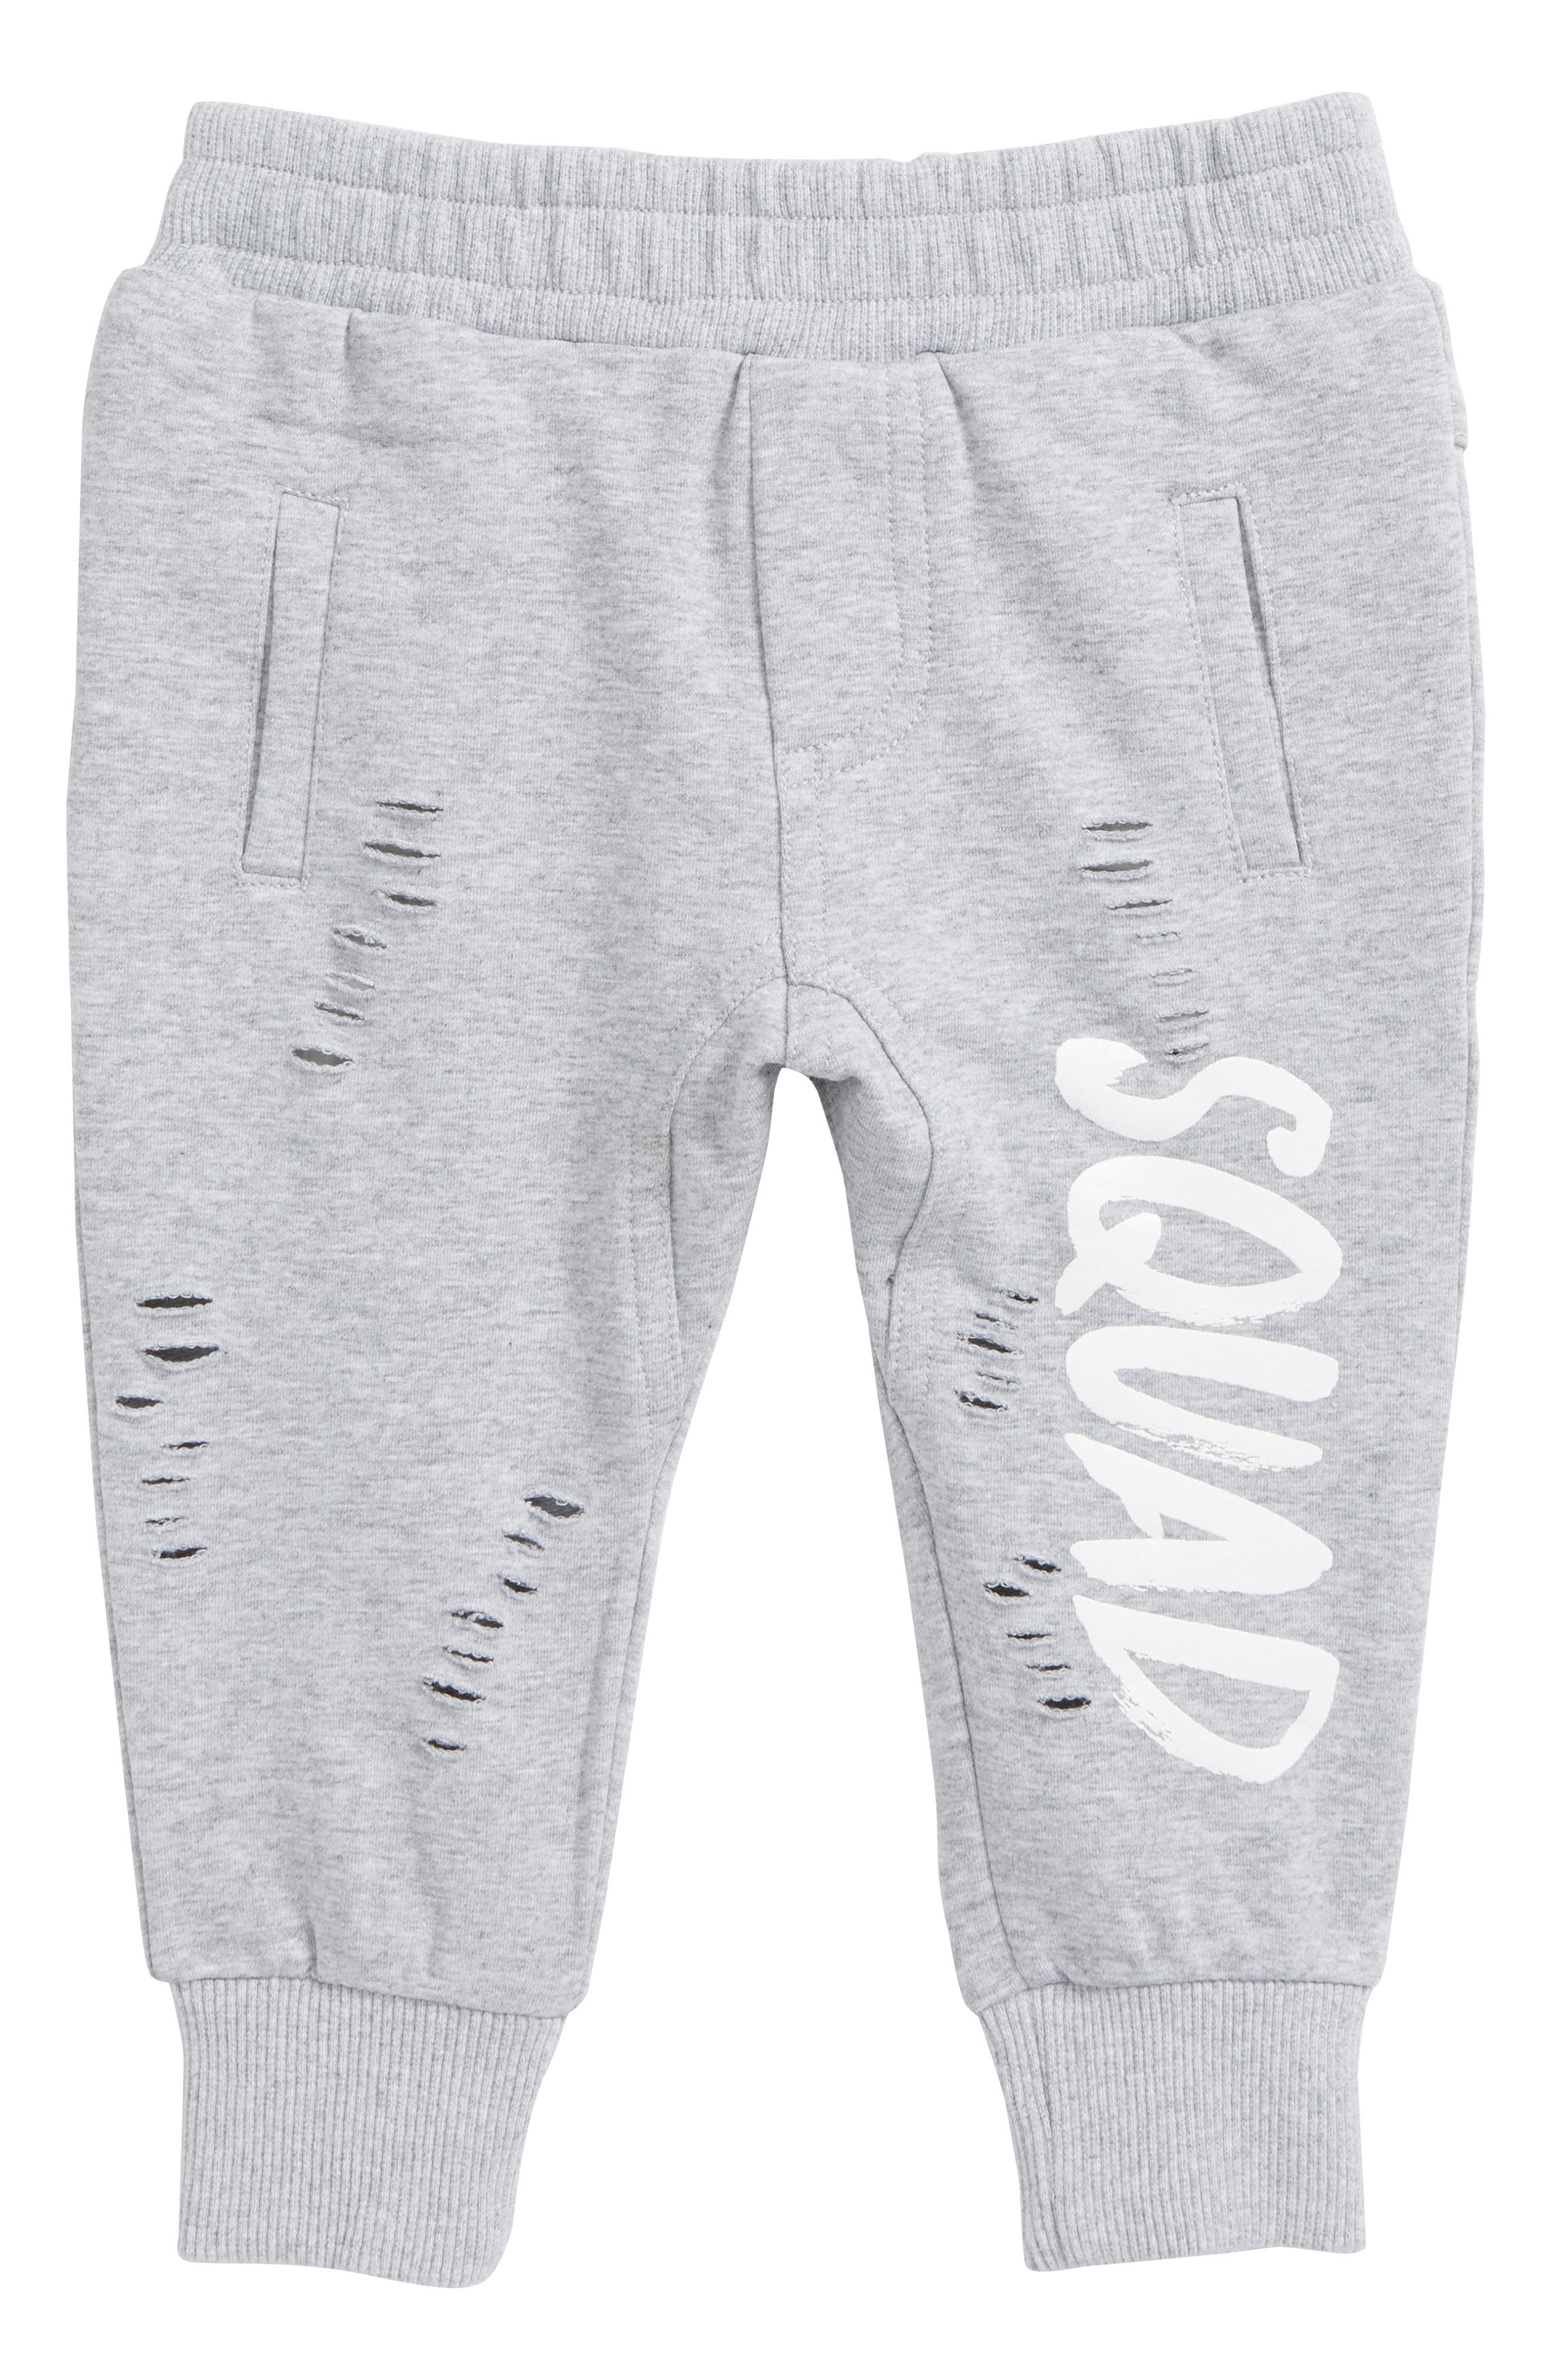 Tracky Sweatpants,                         Main,                         color, 038